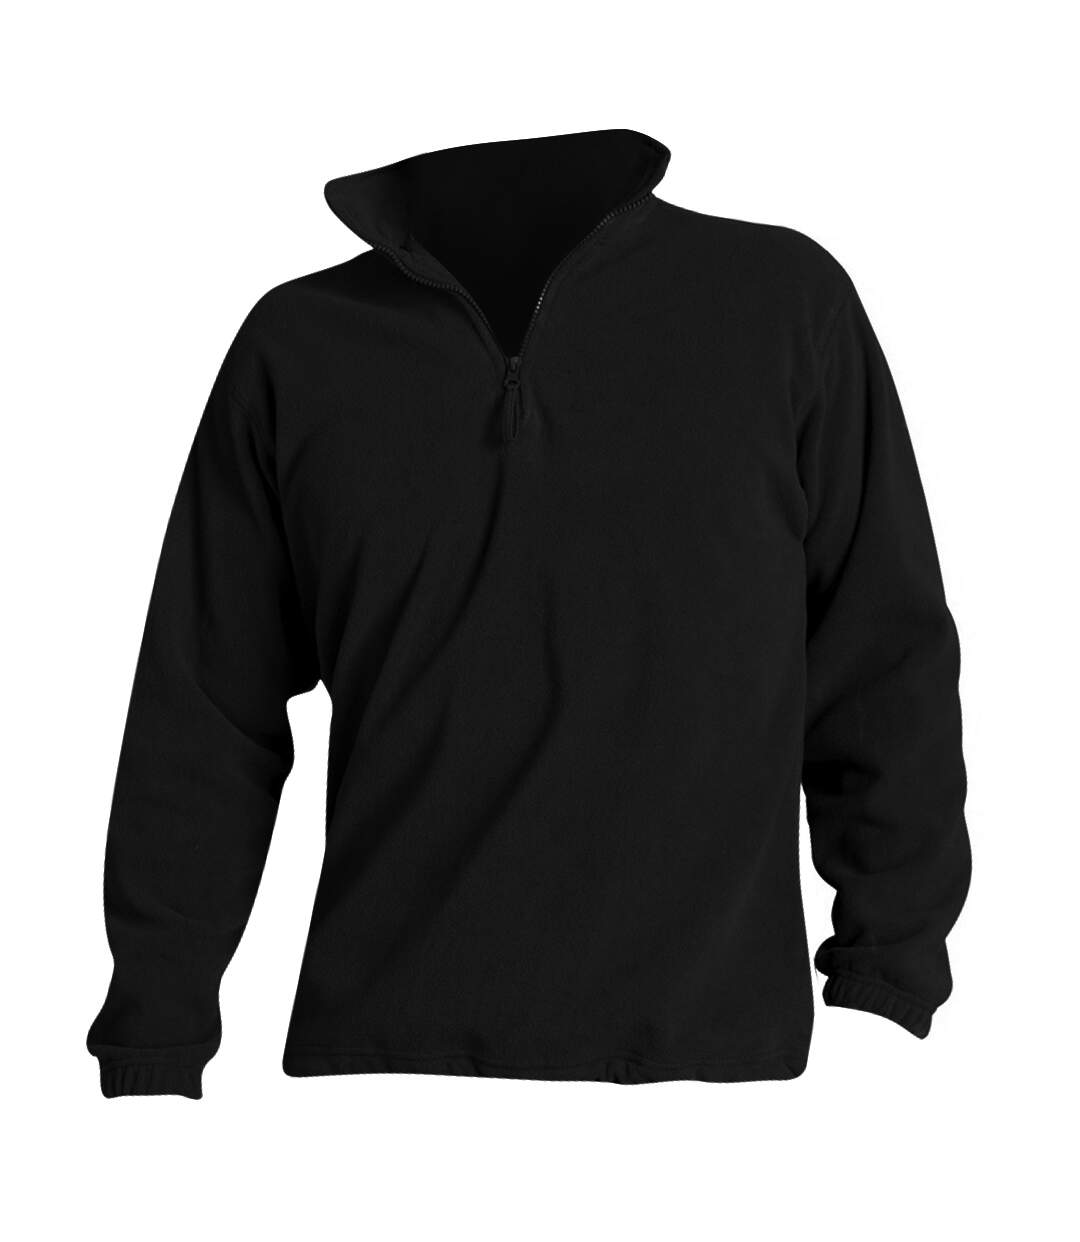 SOLS Ness Unisex Zip Neck Anti-Pill Fleece Top (Black) - UTPC345